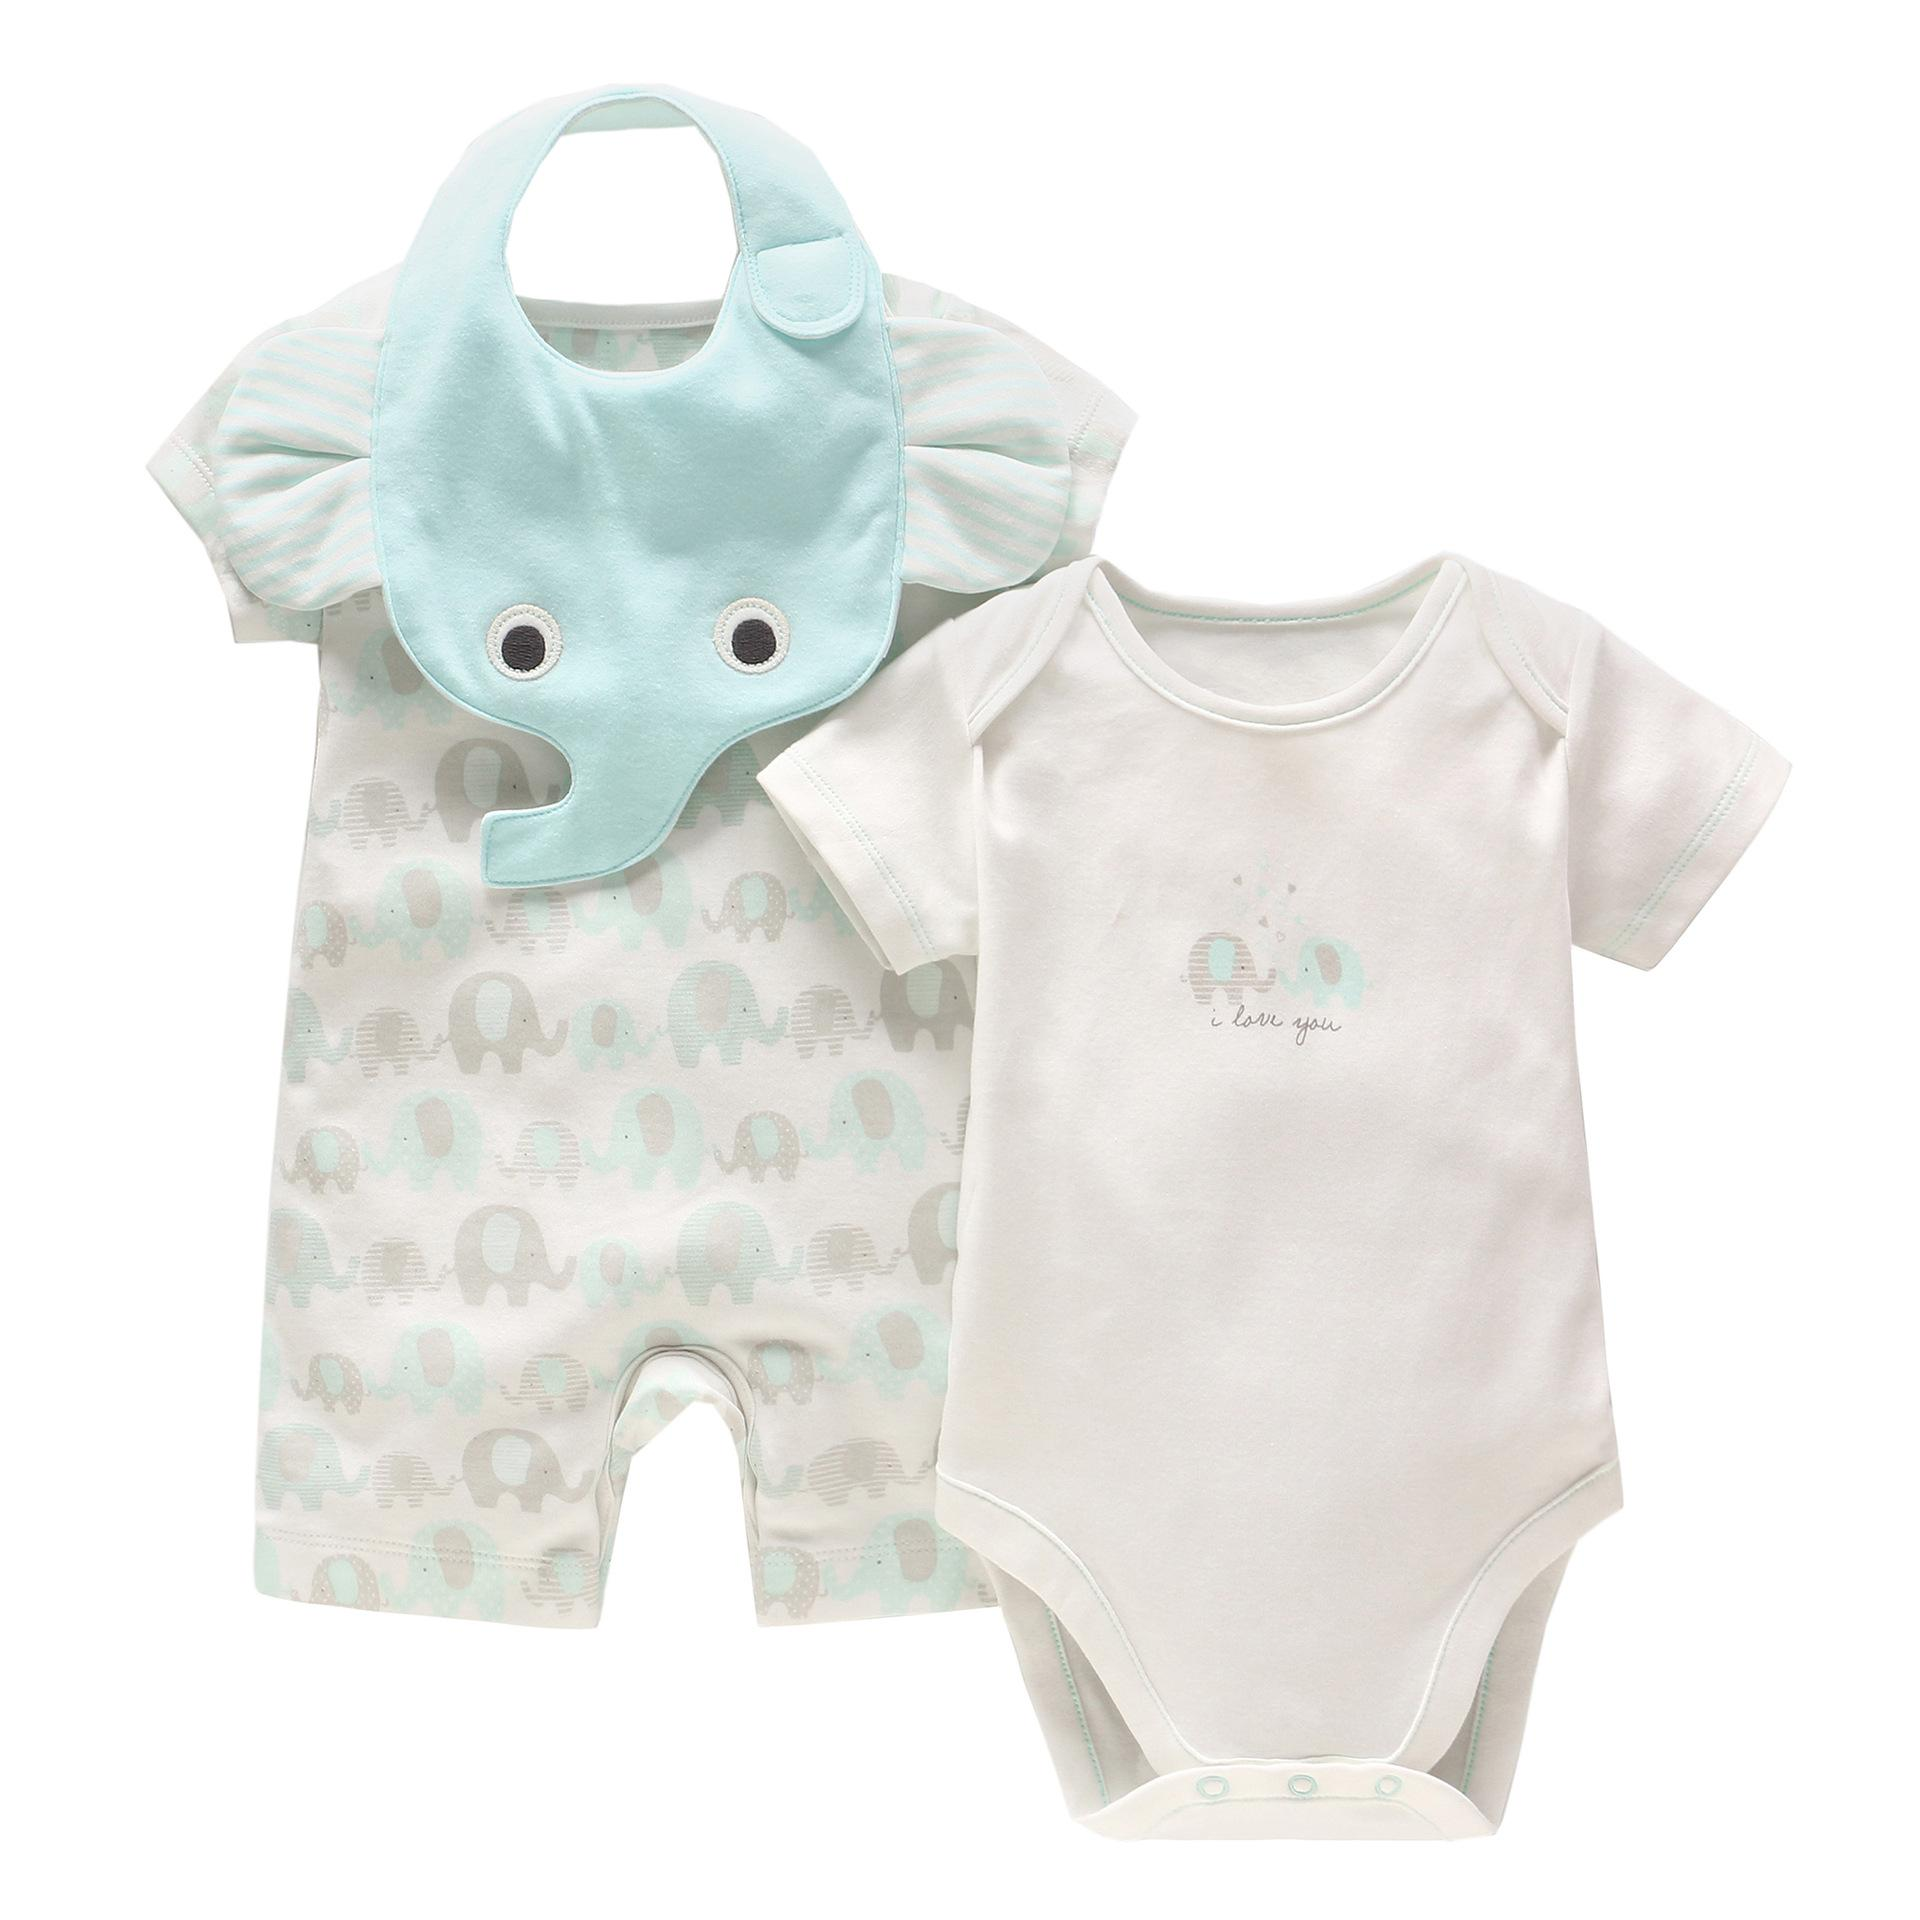 3740d03af1dd 2019 New Baby Boy Clothing Set Summer Baby Cotton Bodysuit +Elephant Printed  Romper +Animal Bibs Set Newborn Baby Girl Clothes From Sport xgj